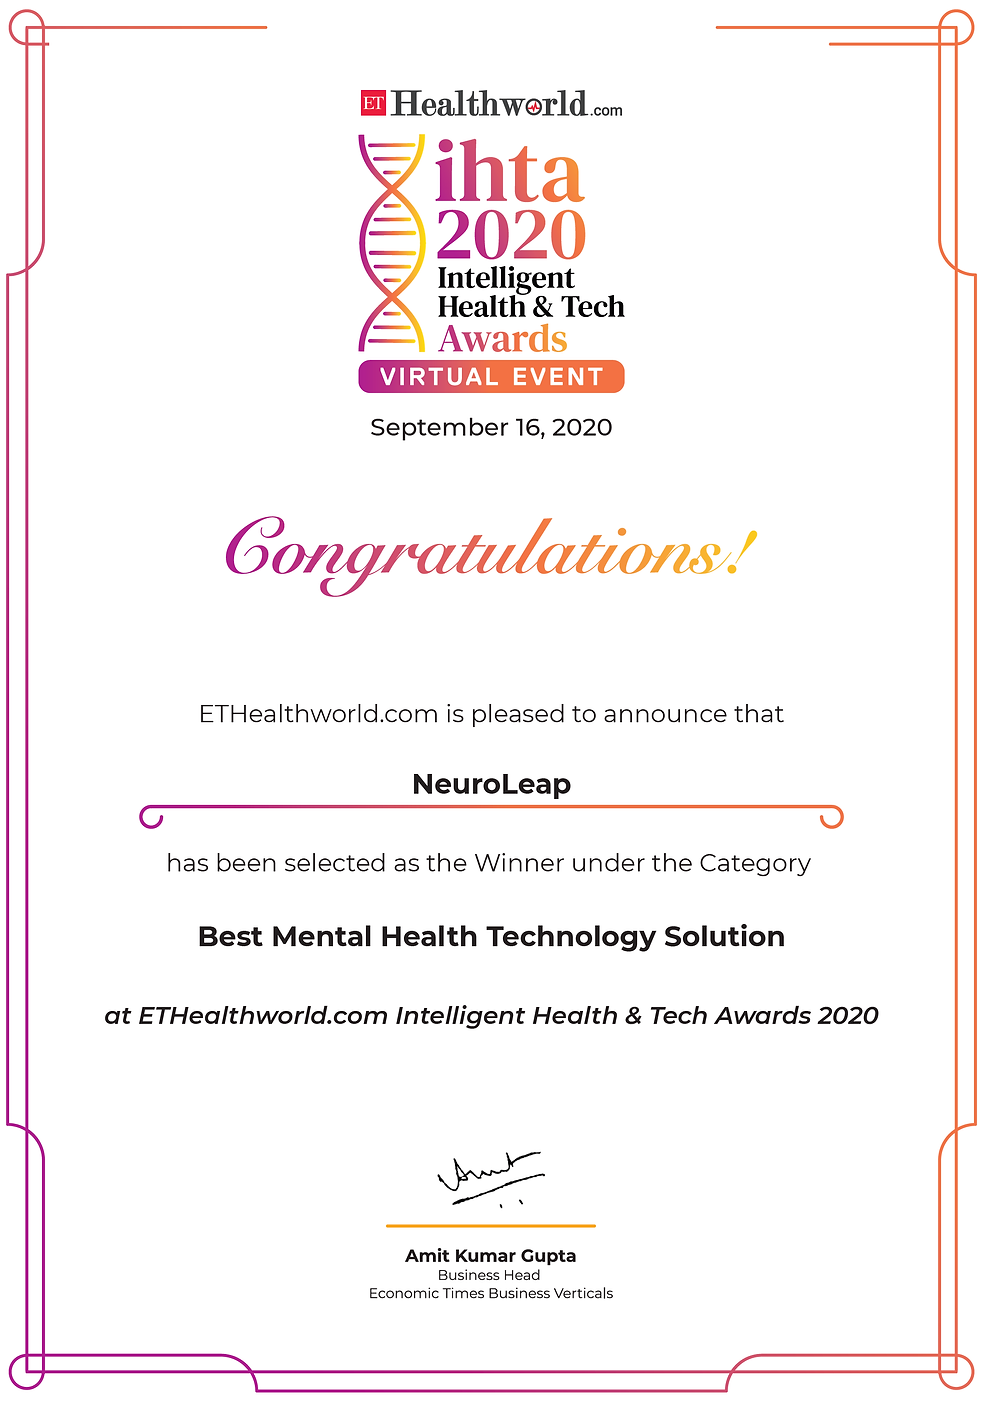 The Economic Times awards NeuroLeap the Best Mental Health Technology solution